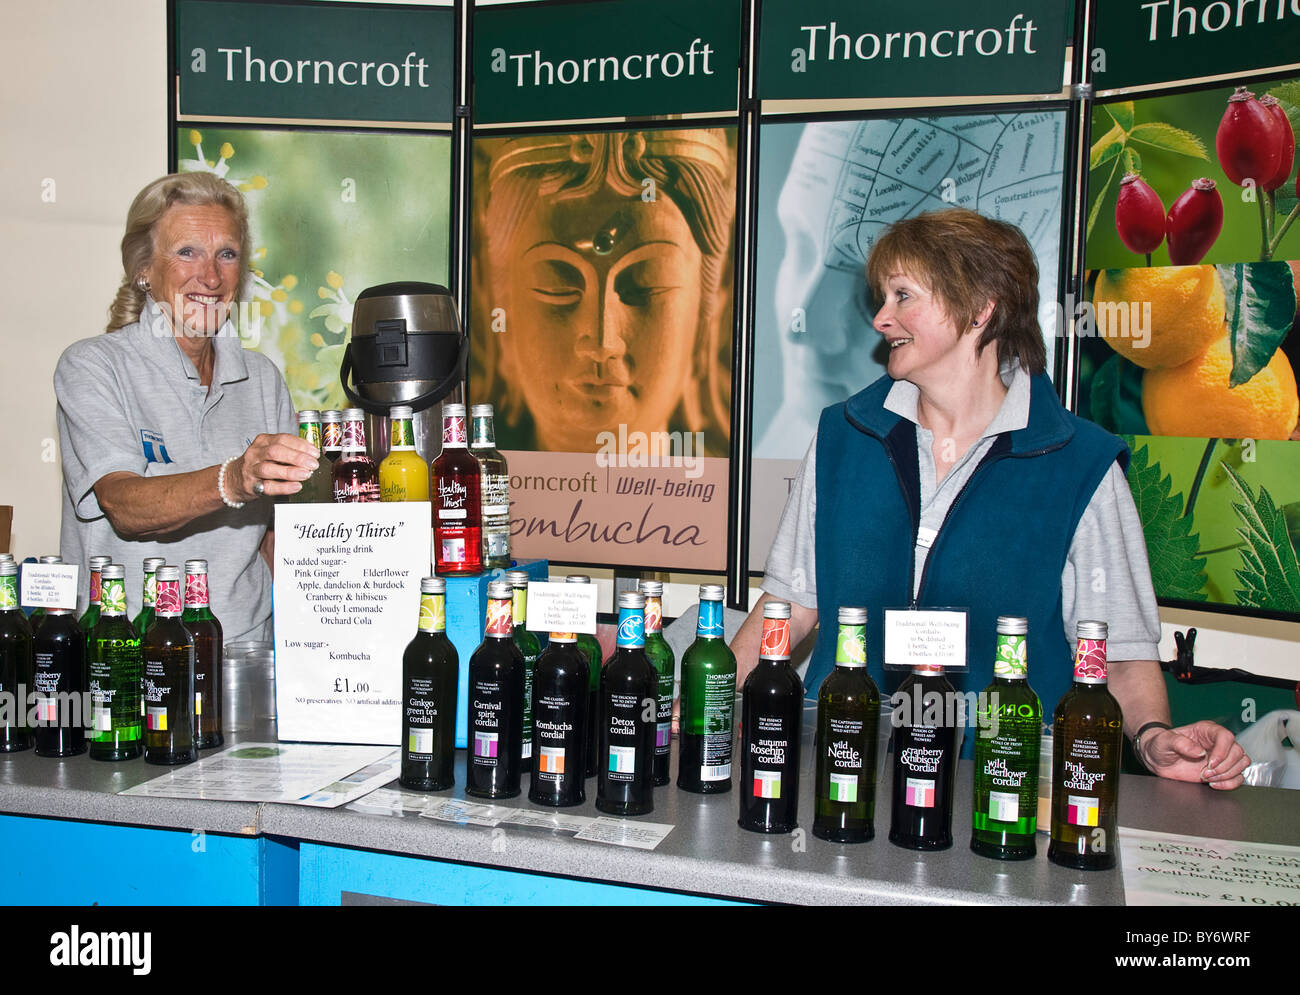 Thorncroft Cordials exhibit at the annual Festival of Food and Drink at Leyburn, North Yorkshire - Stock Image